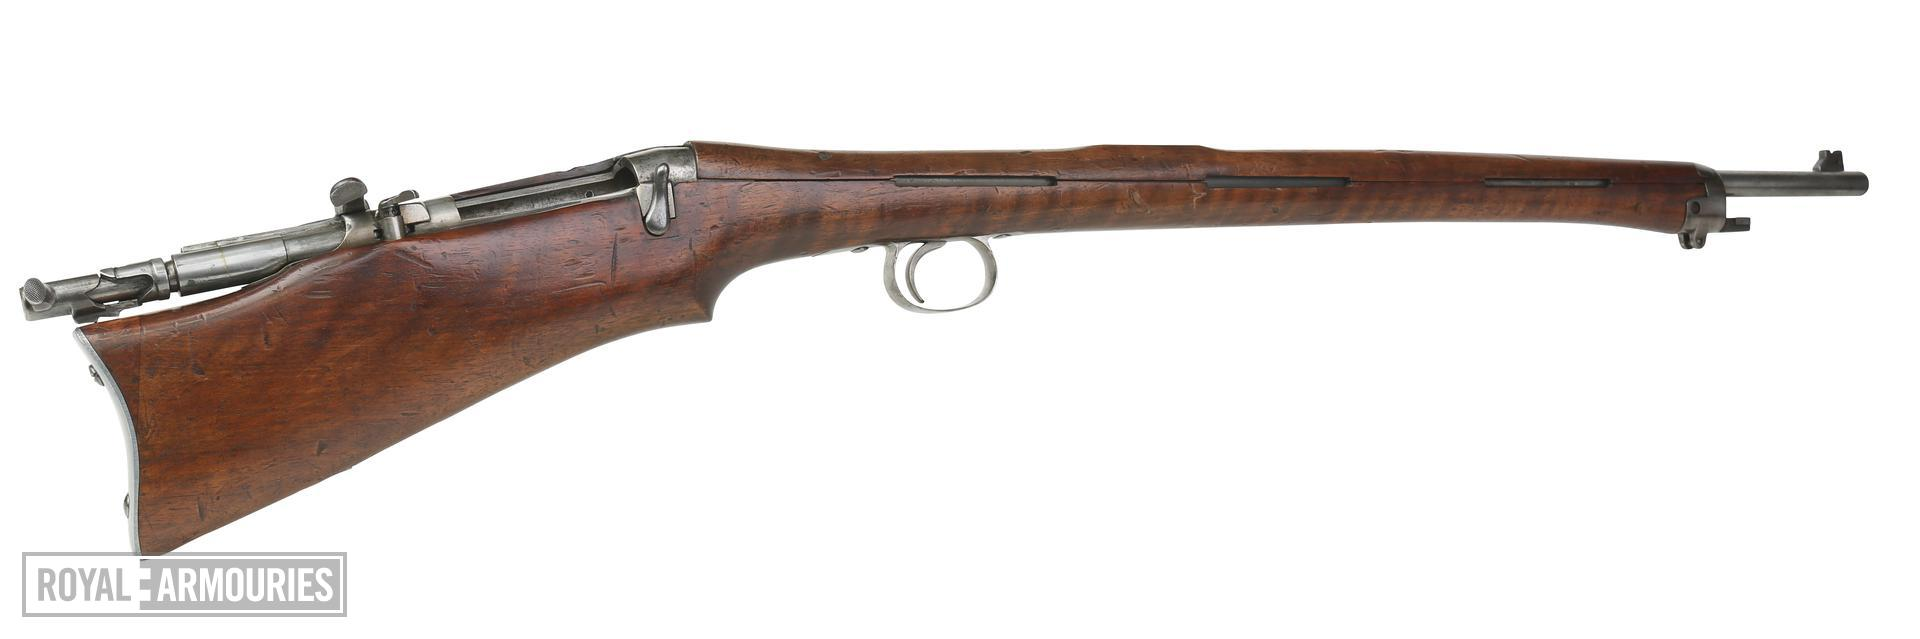 Centrefire bolt-action rifle - Thorneycroft First Pattern